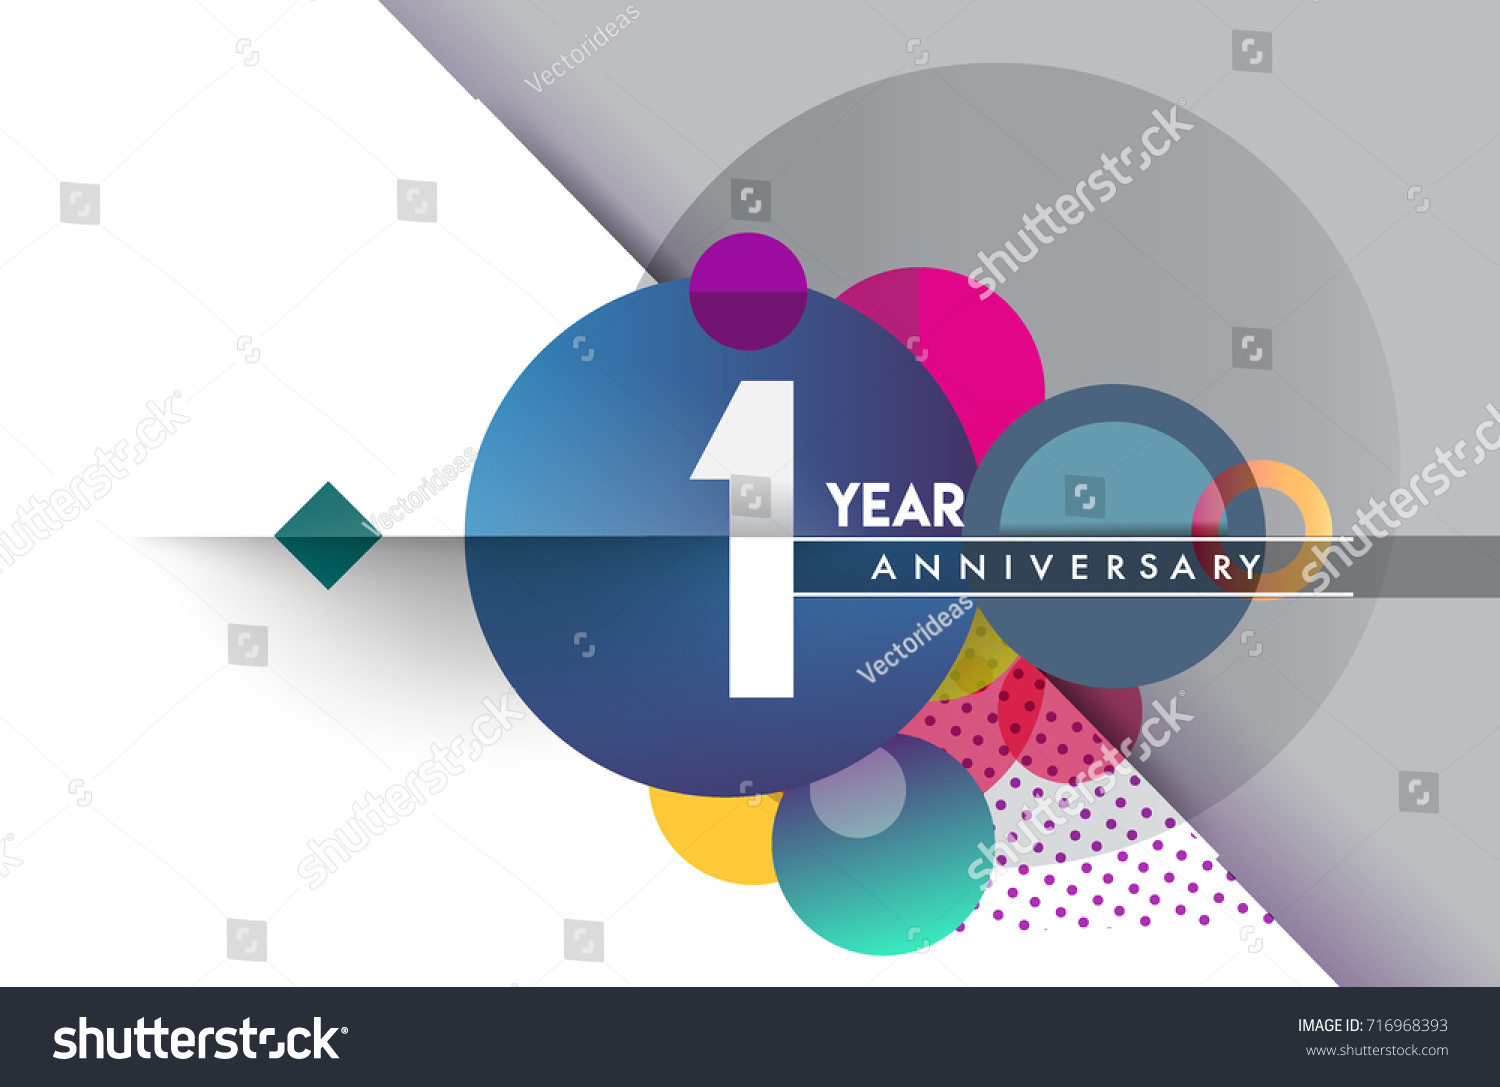 St year anniversary logo vector design stock vector